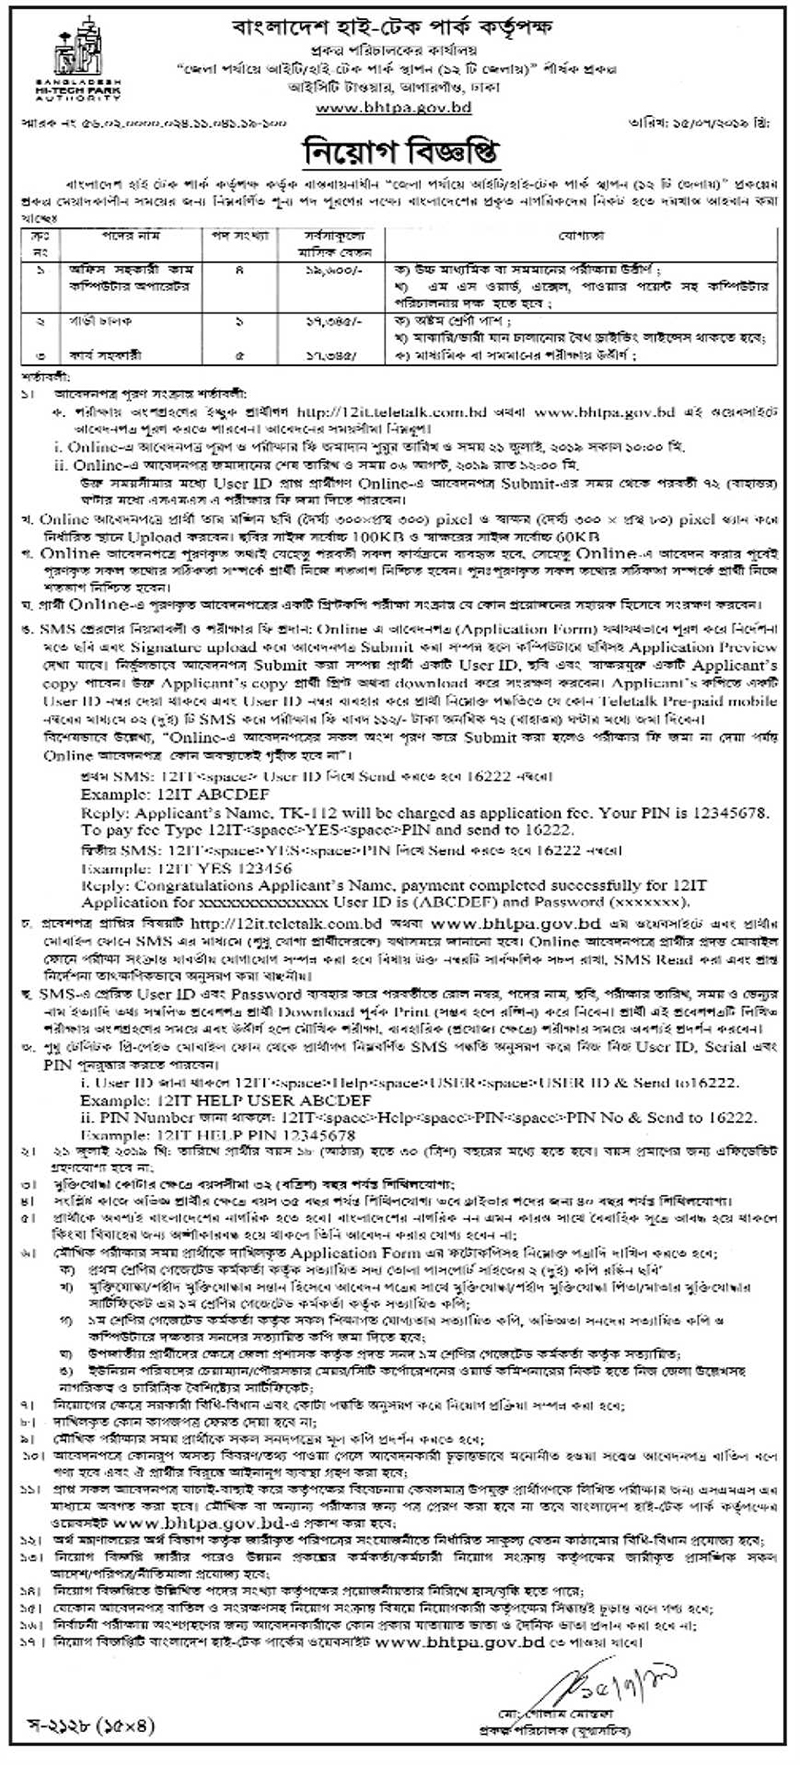 Bangladesh hi tech park authority job circular 2019